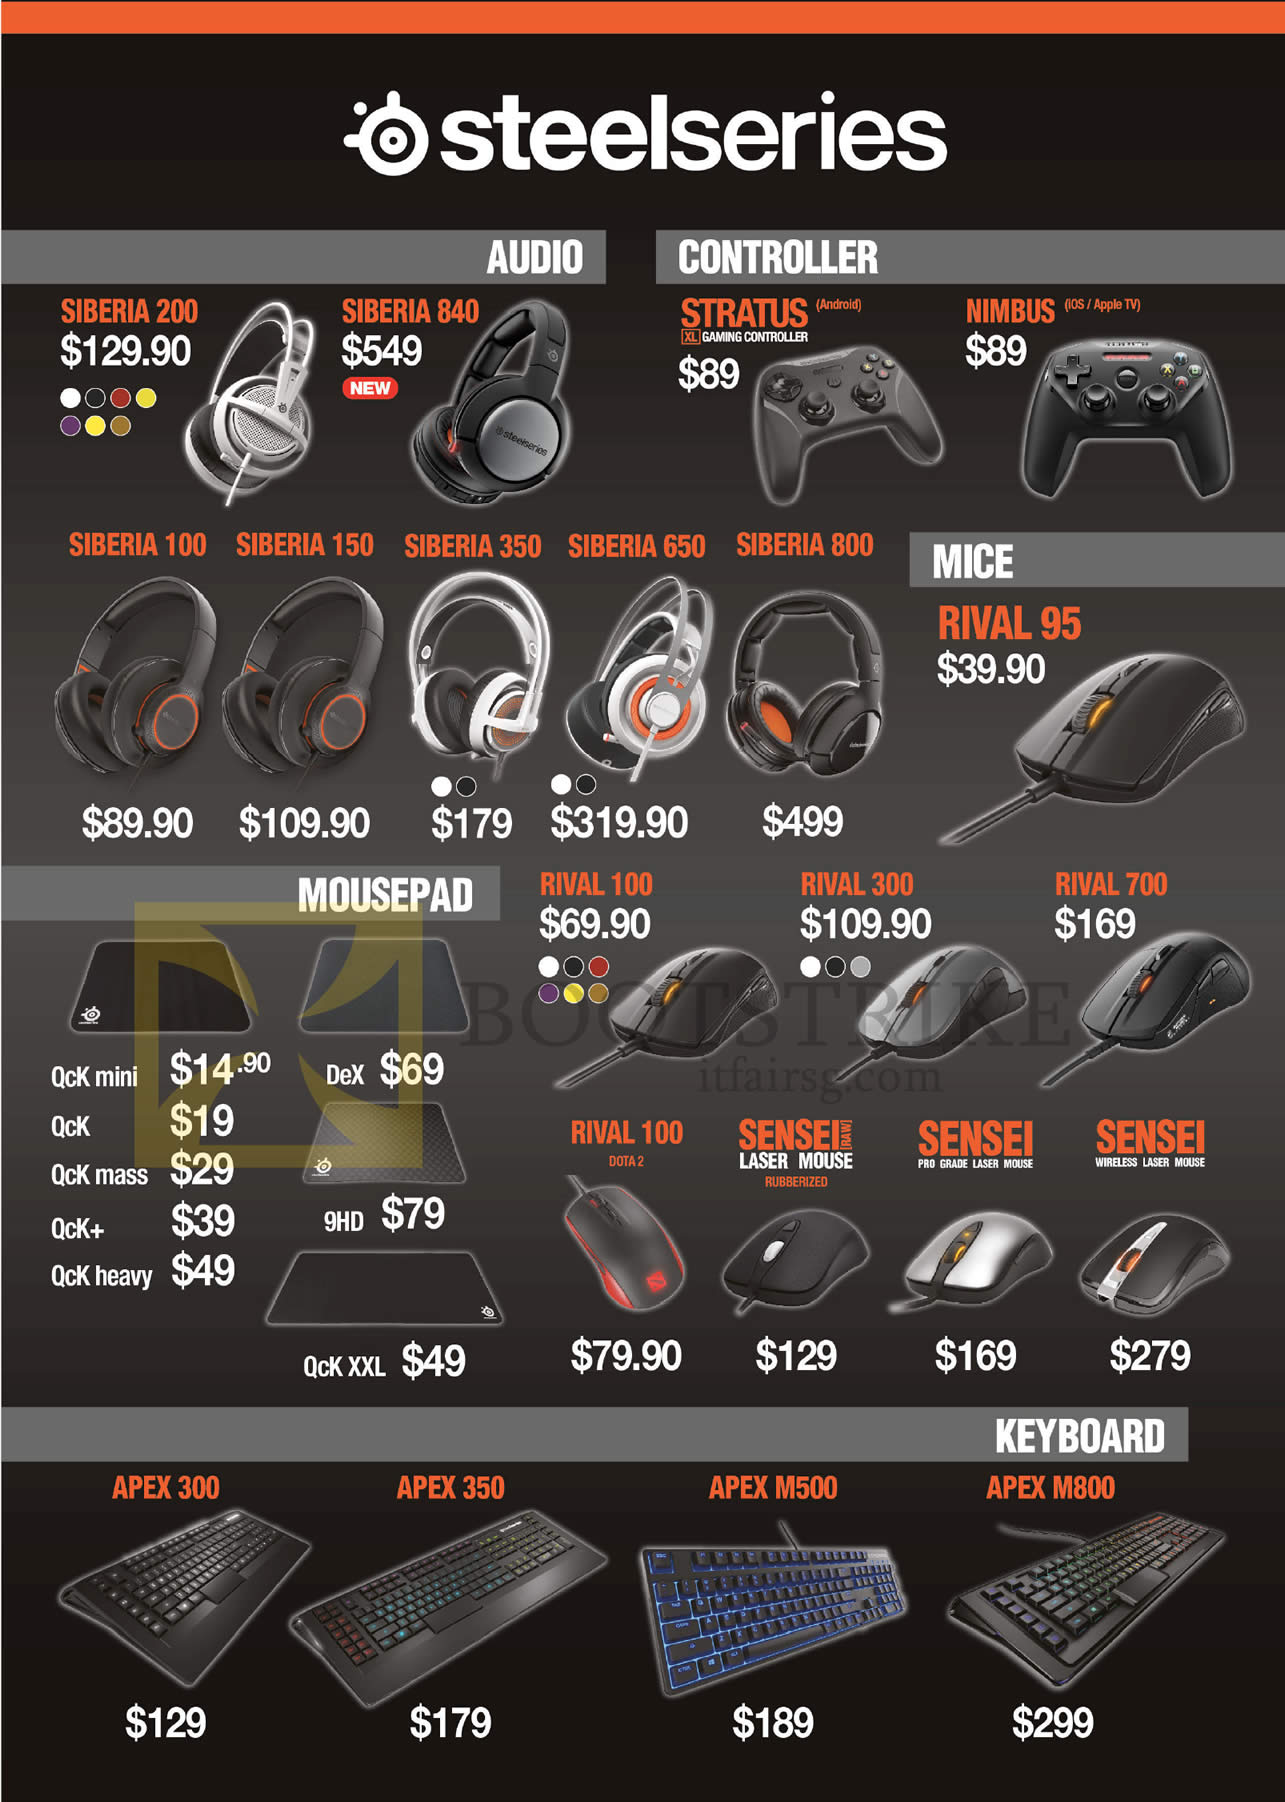 COMEX 2016 price list image brochure of Steelseries Headphones, Mousepads, Mouse, Keyboards, Siberia 200, 840, 100, 150, 350, 650, 800, Stratus, Nimbus, Rival 95, 100, 300, 700, Apex 300, 350, M500, M800